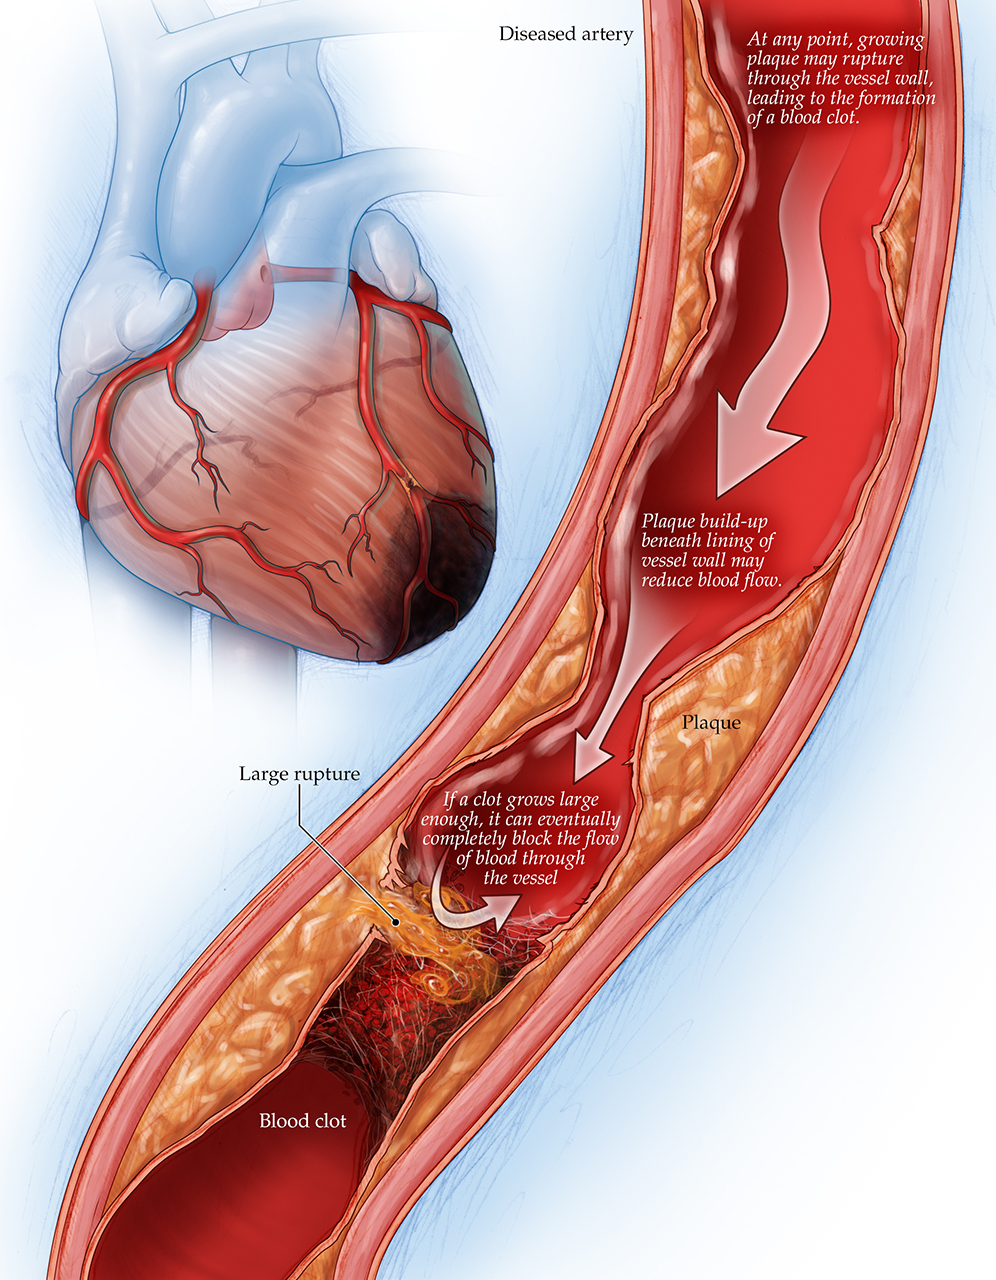 coronary artery disease illustration